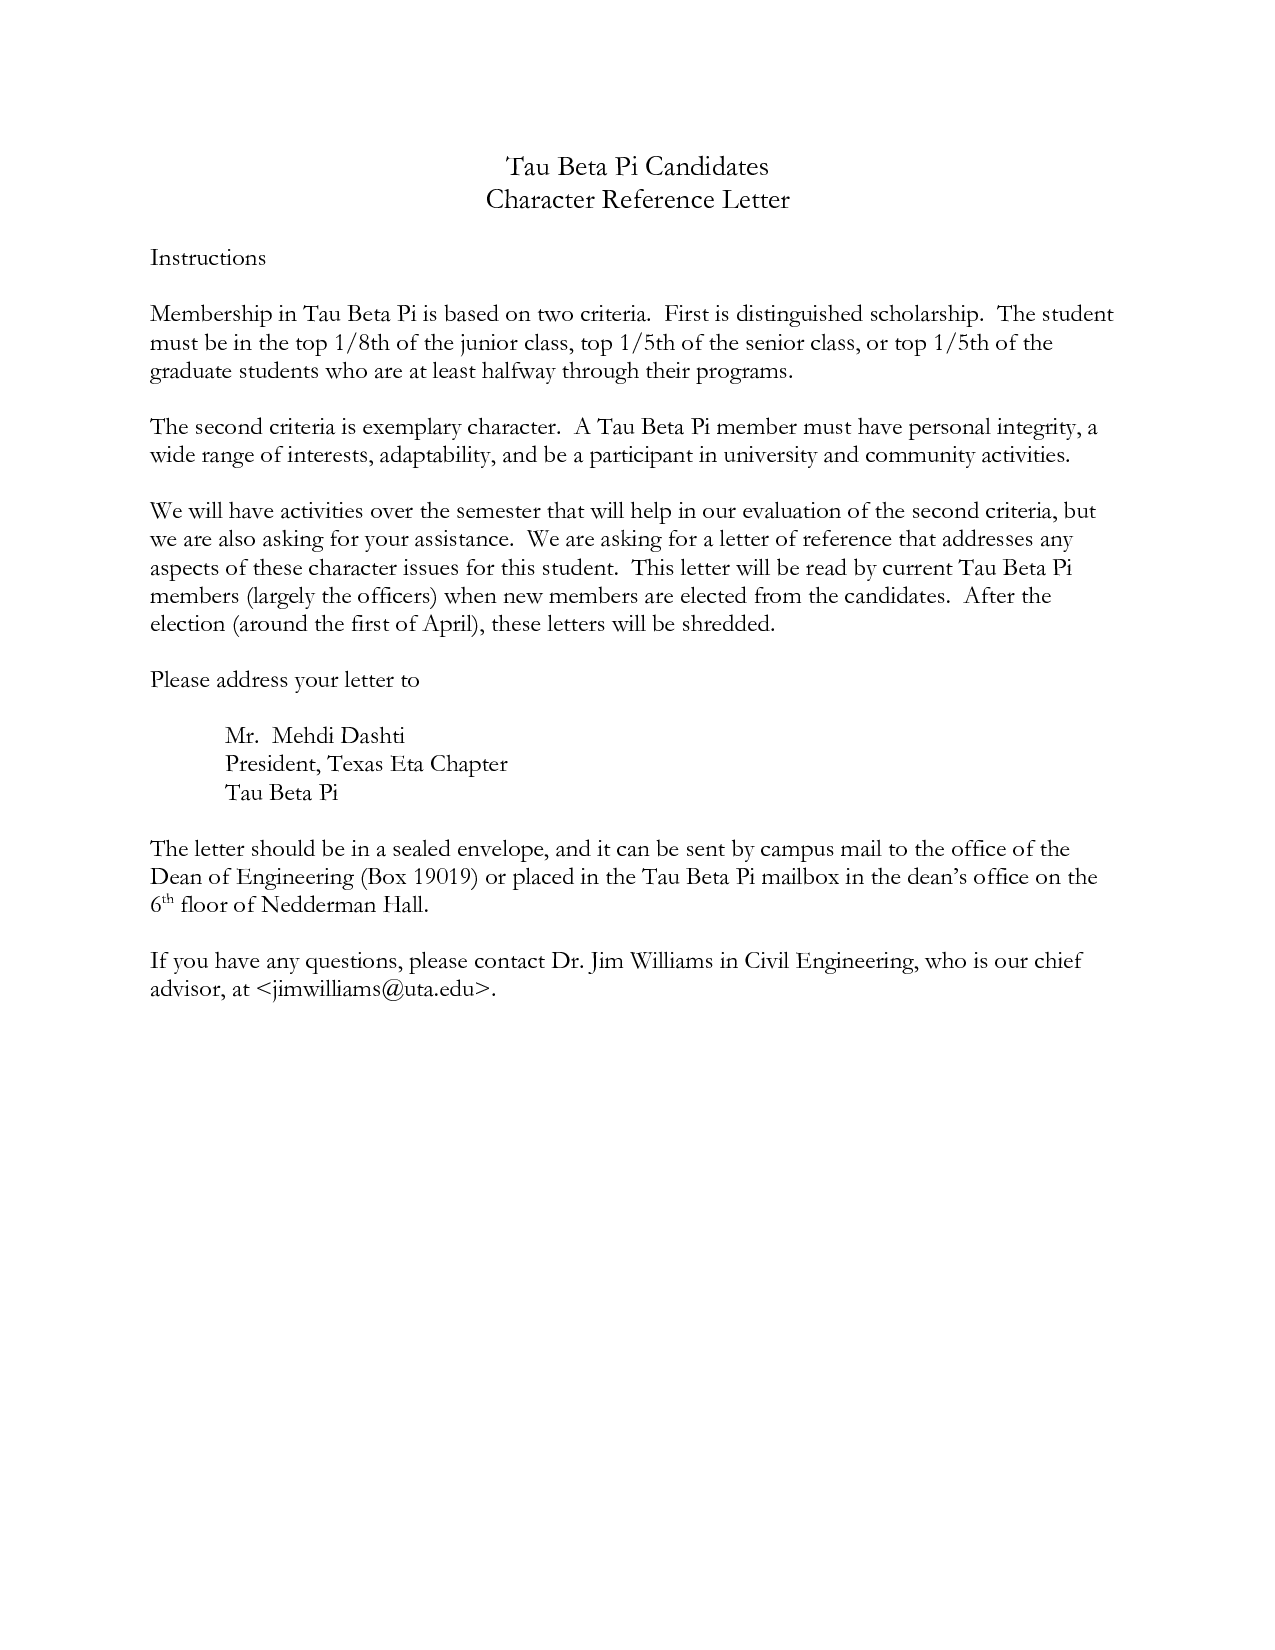 Personal Character Reference Letter Apology With Recommendation